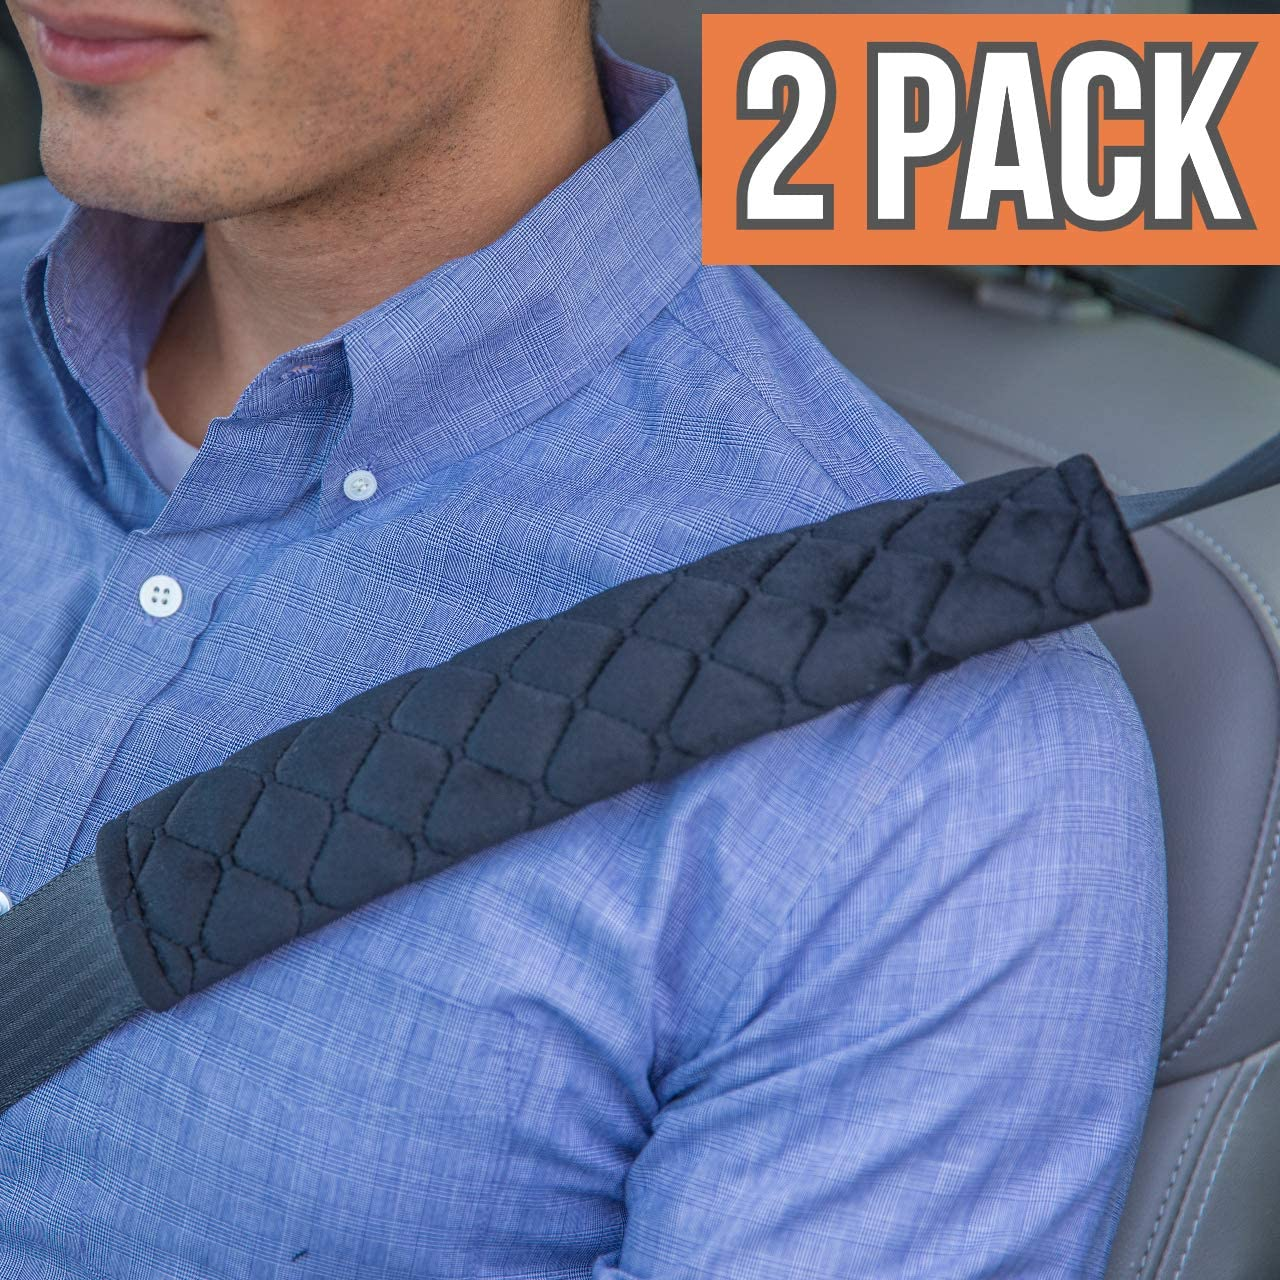 AEVEILS 2PCS Car Sefety Seat Belt Cover for Citroen C2 Breathable Carbon Fibre Car Seat Belt Pads for Adults and Children,Styling Decoration Accessories